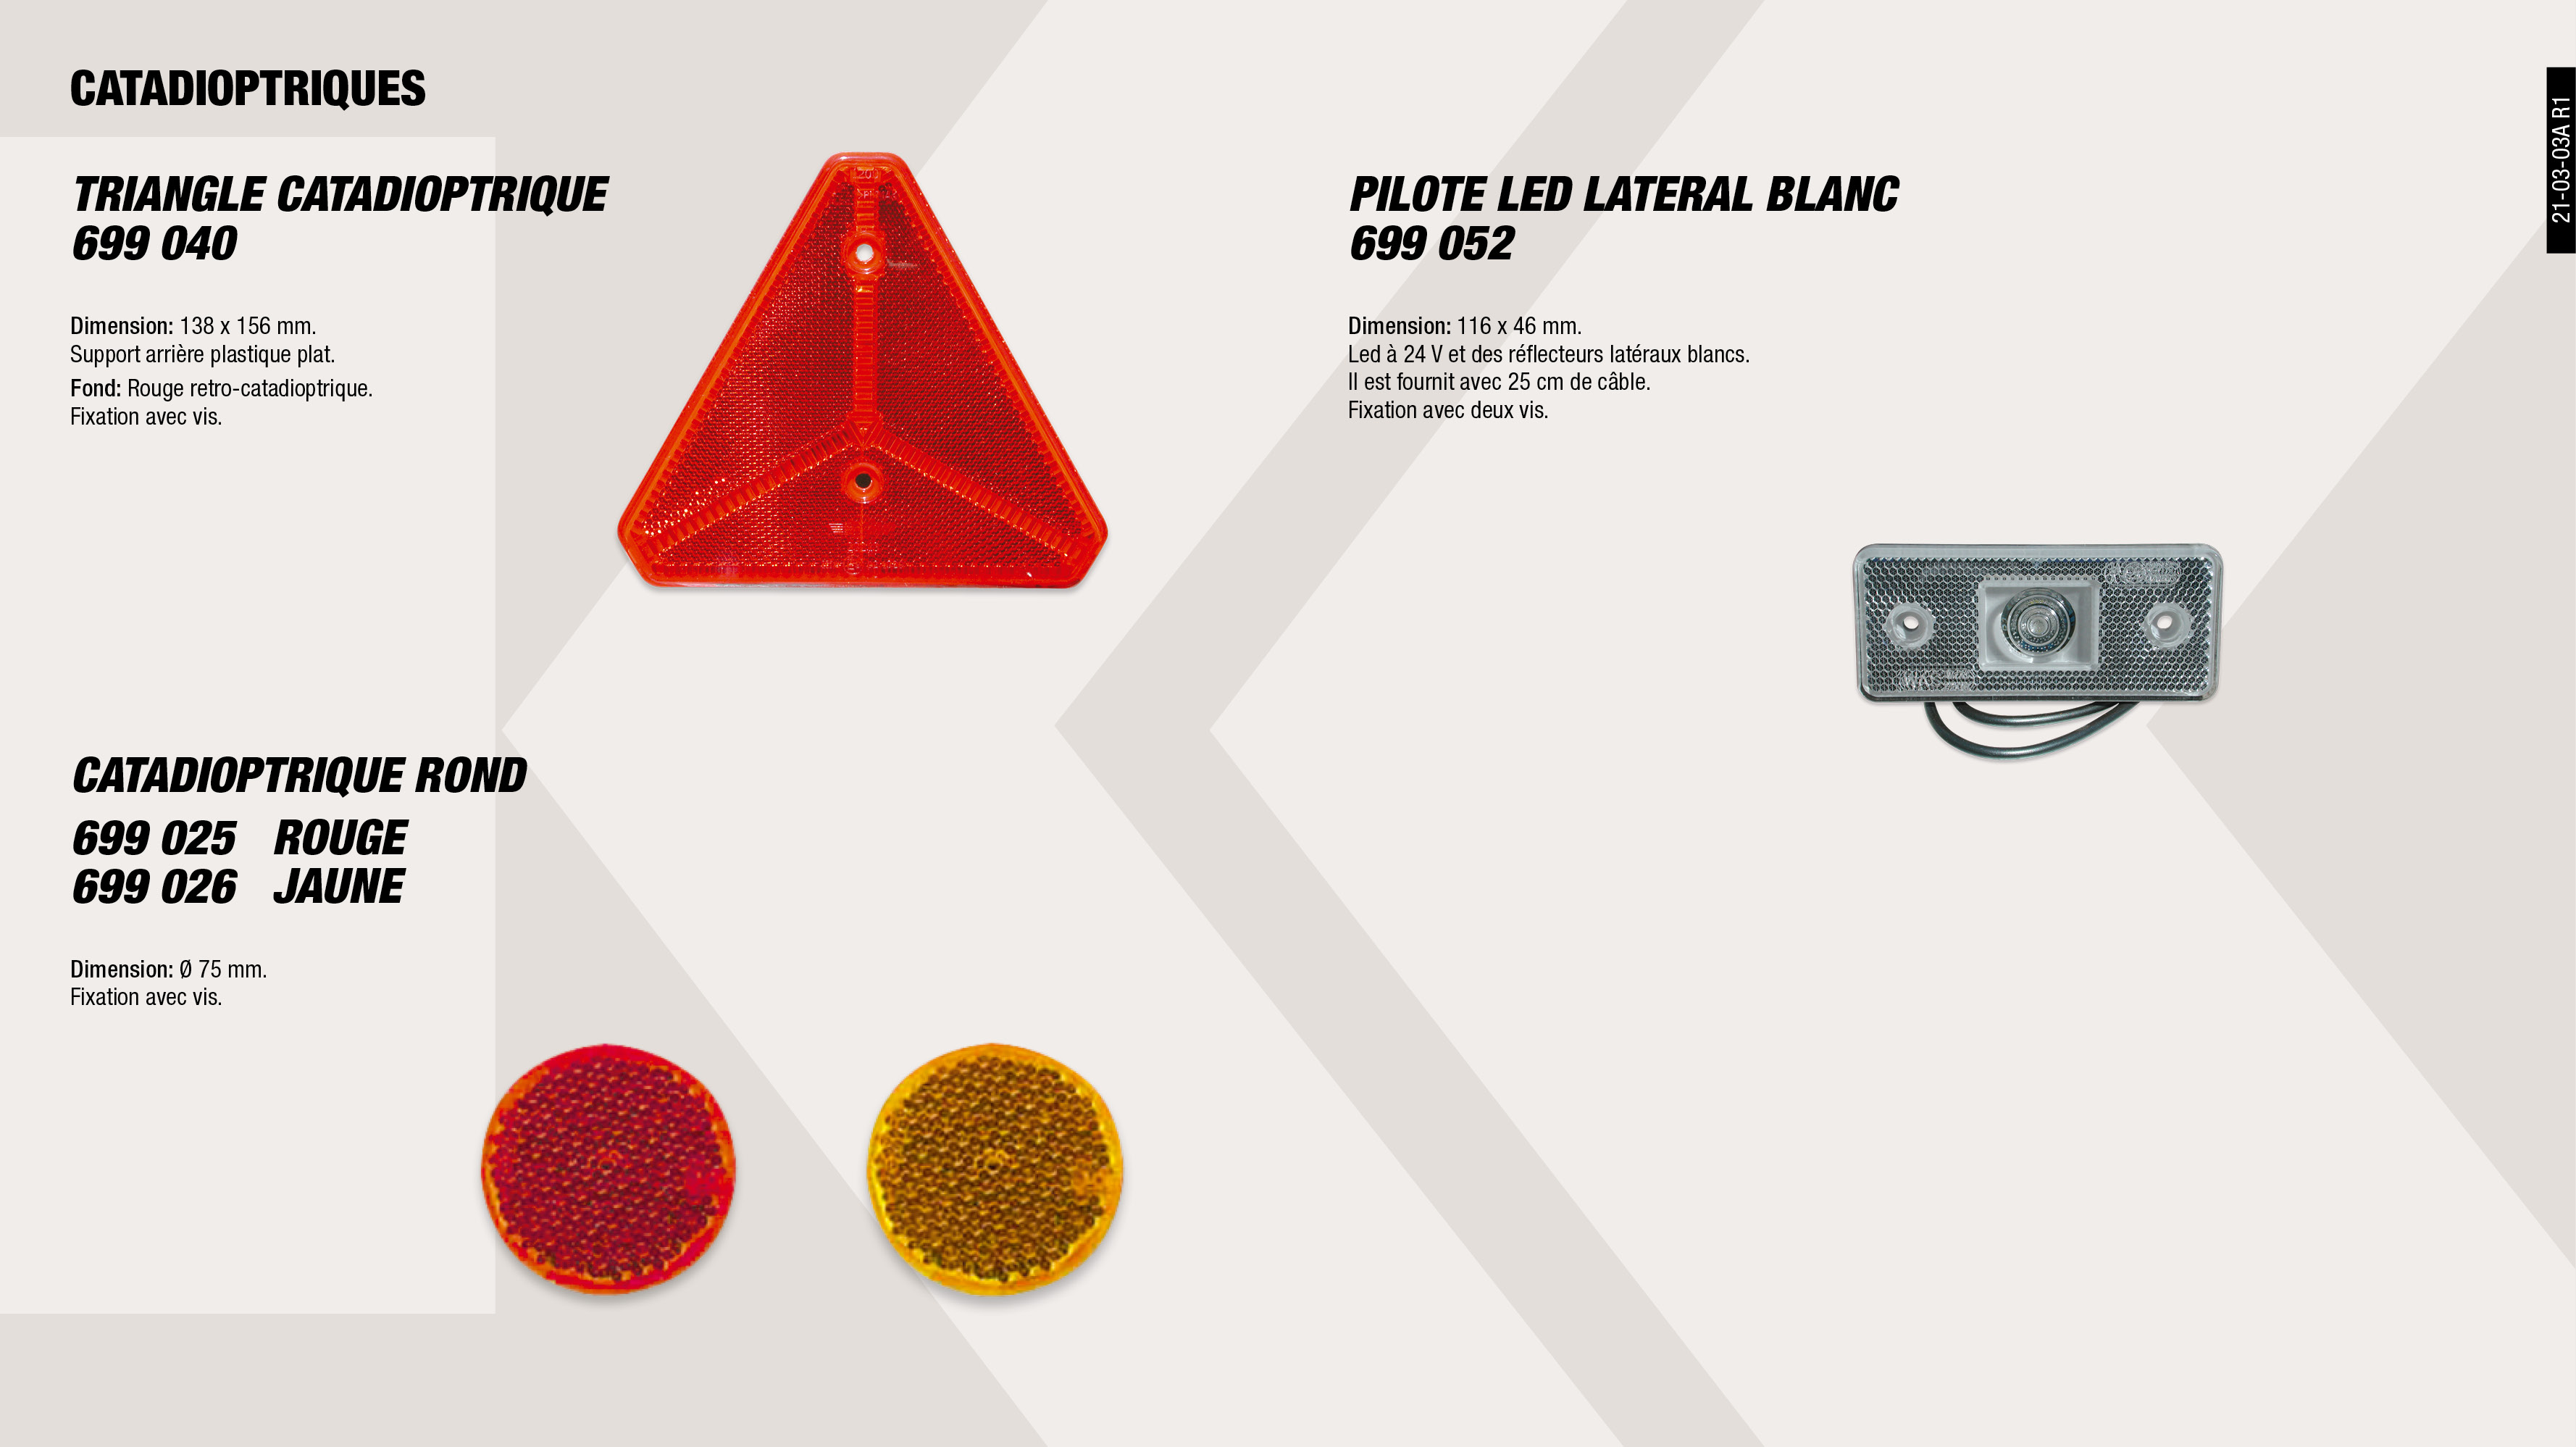 CATADOPTRE ROND ROUGE                                       ,  									PILOTE LED LATERAL BLANC                                    ,  									TRIANGLE CATADIOPTRE                                        ,  									CATADRIOPTRE ROND JAUNE                                     ,